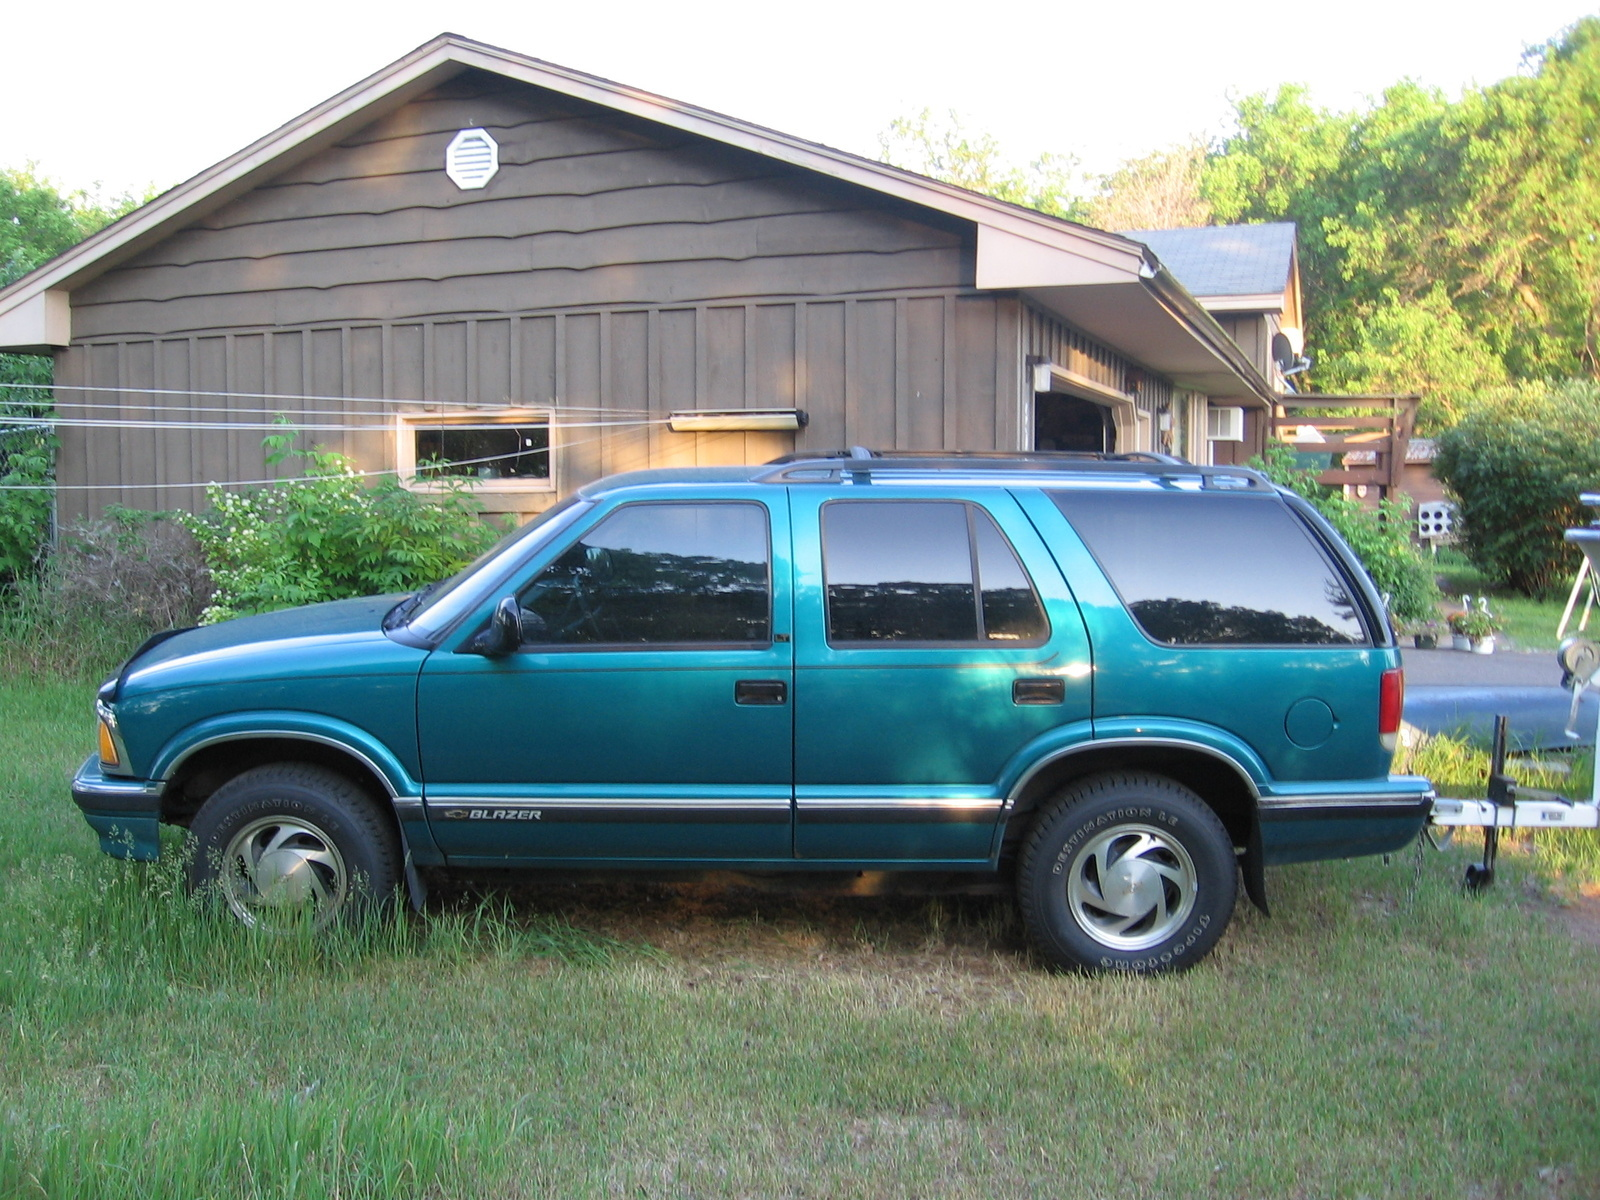 1996 Gmc Jimmy Overview Cargurus On 20 S Cars Compared To